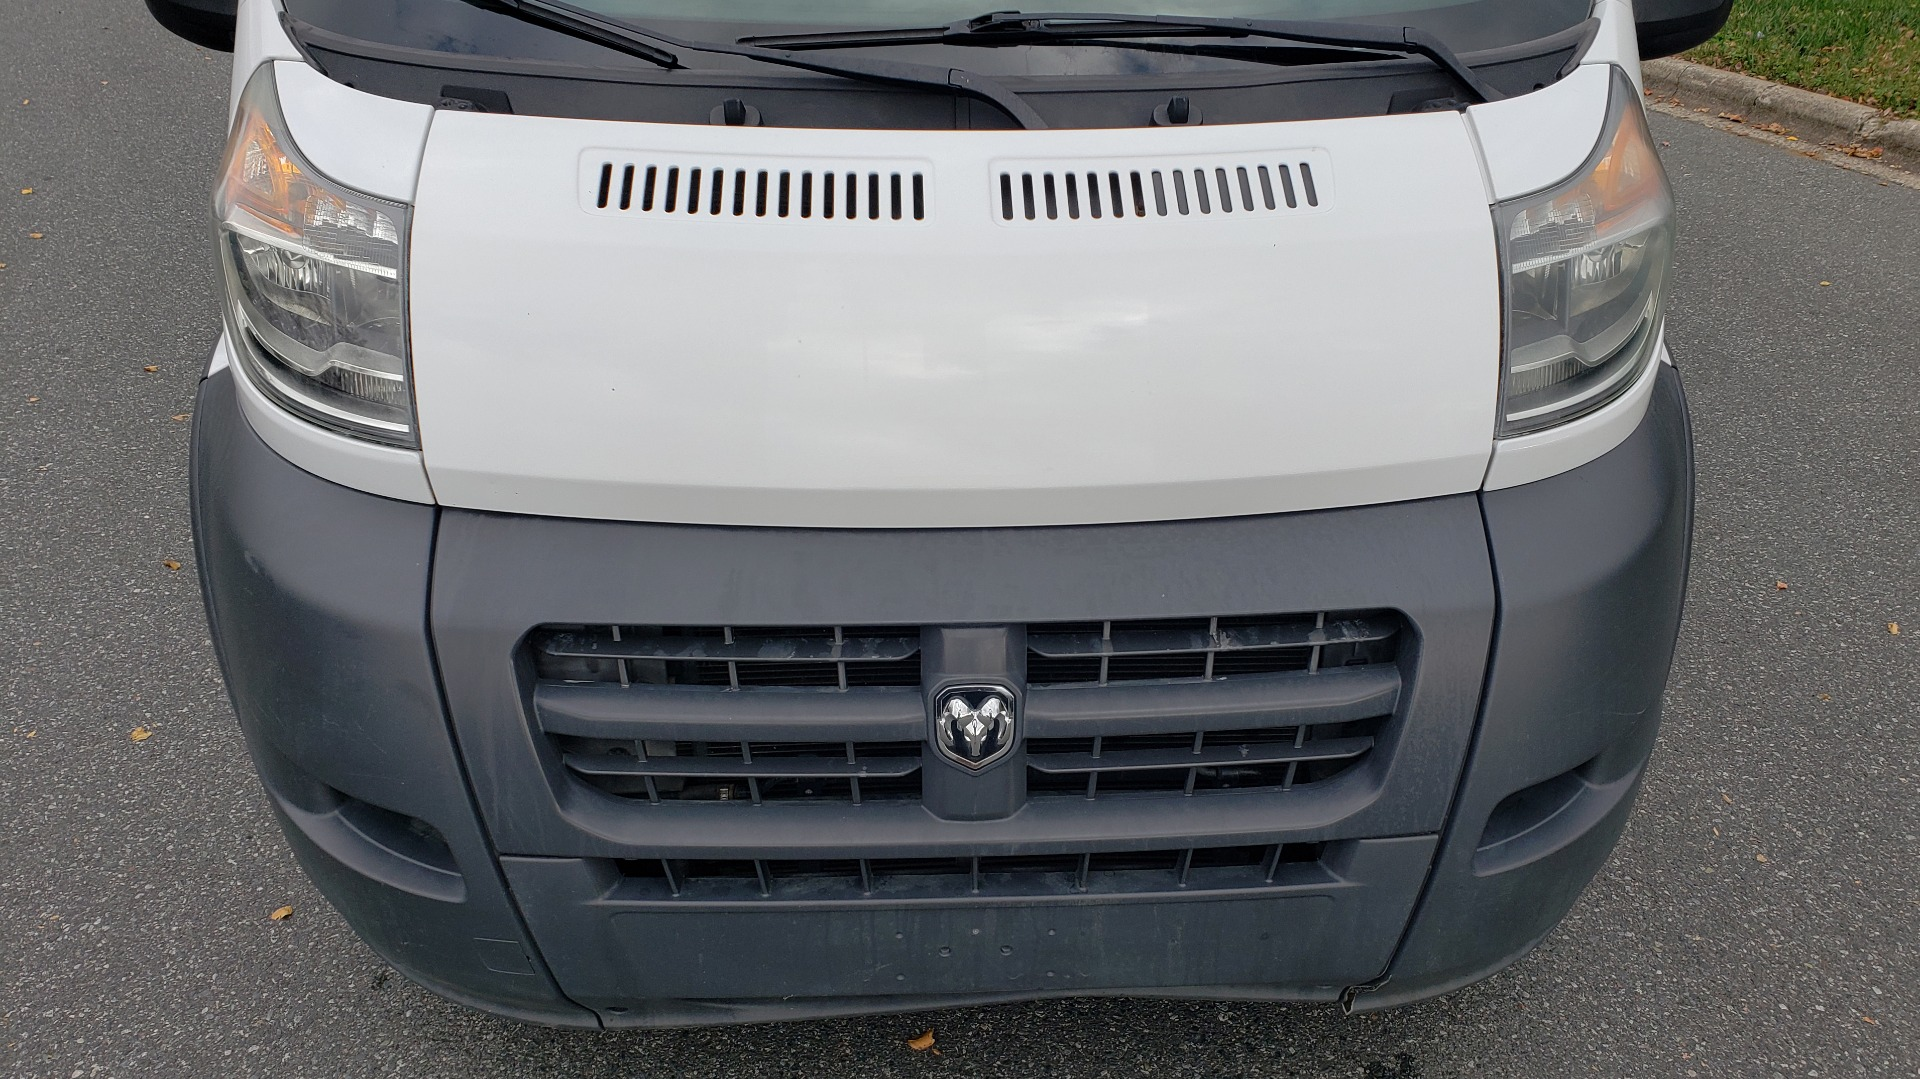 Used 2015 Ram PROMASTER CARGO VAN 136-INCH WB / LOW ROOF / LADDER RACK / INSIDE RACKS for sale $15,995 at Formula Imports in Charlotte NC 28227 16